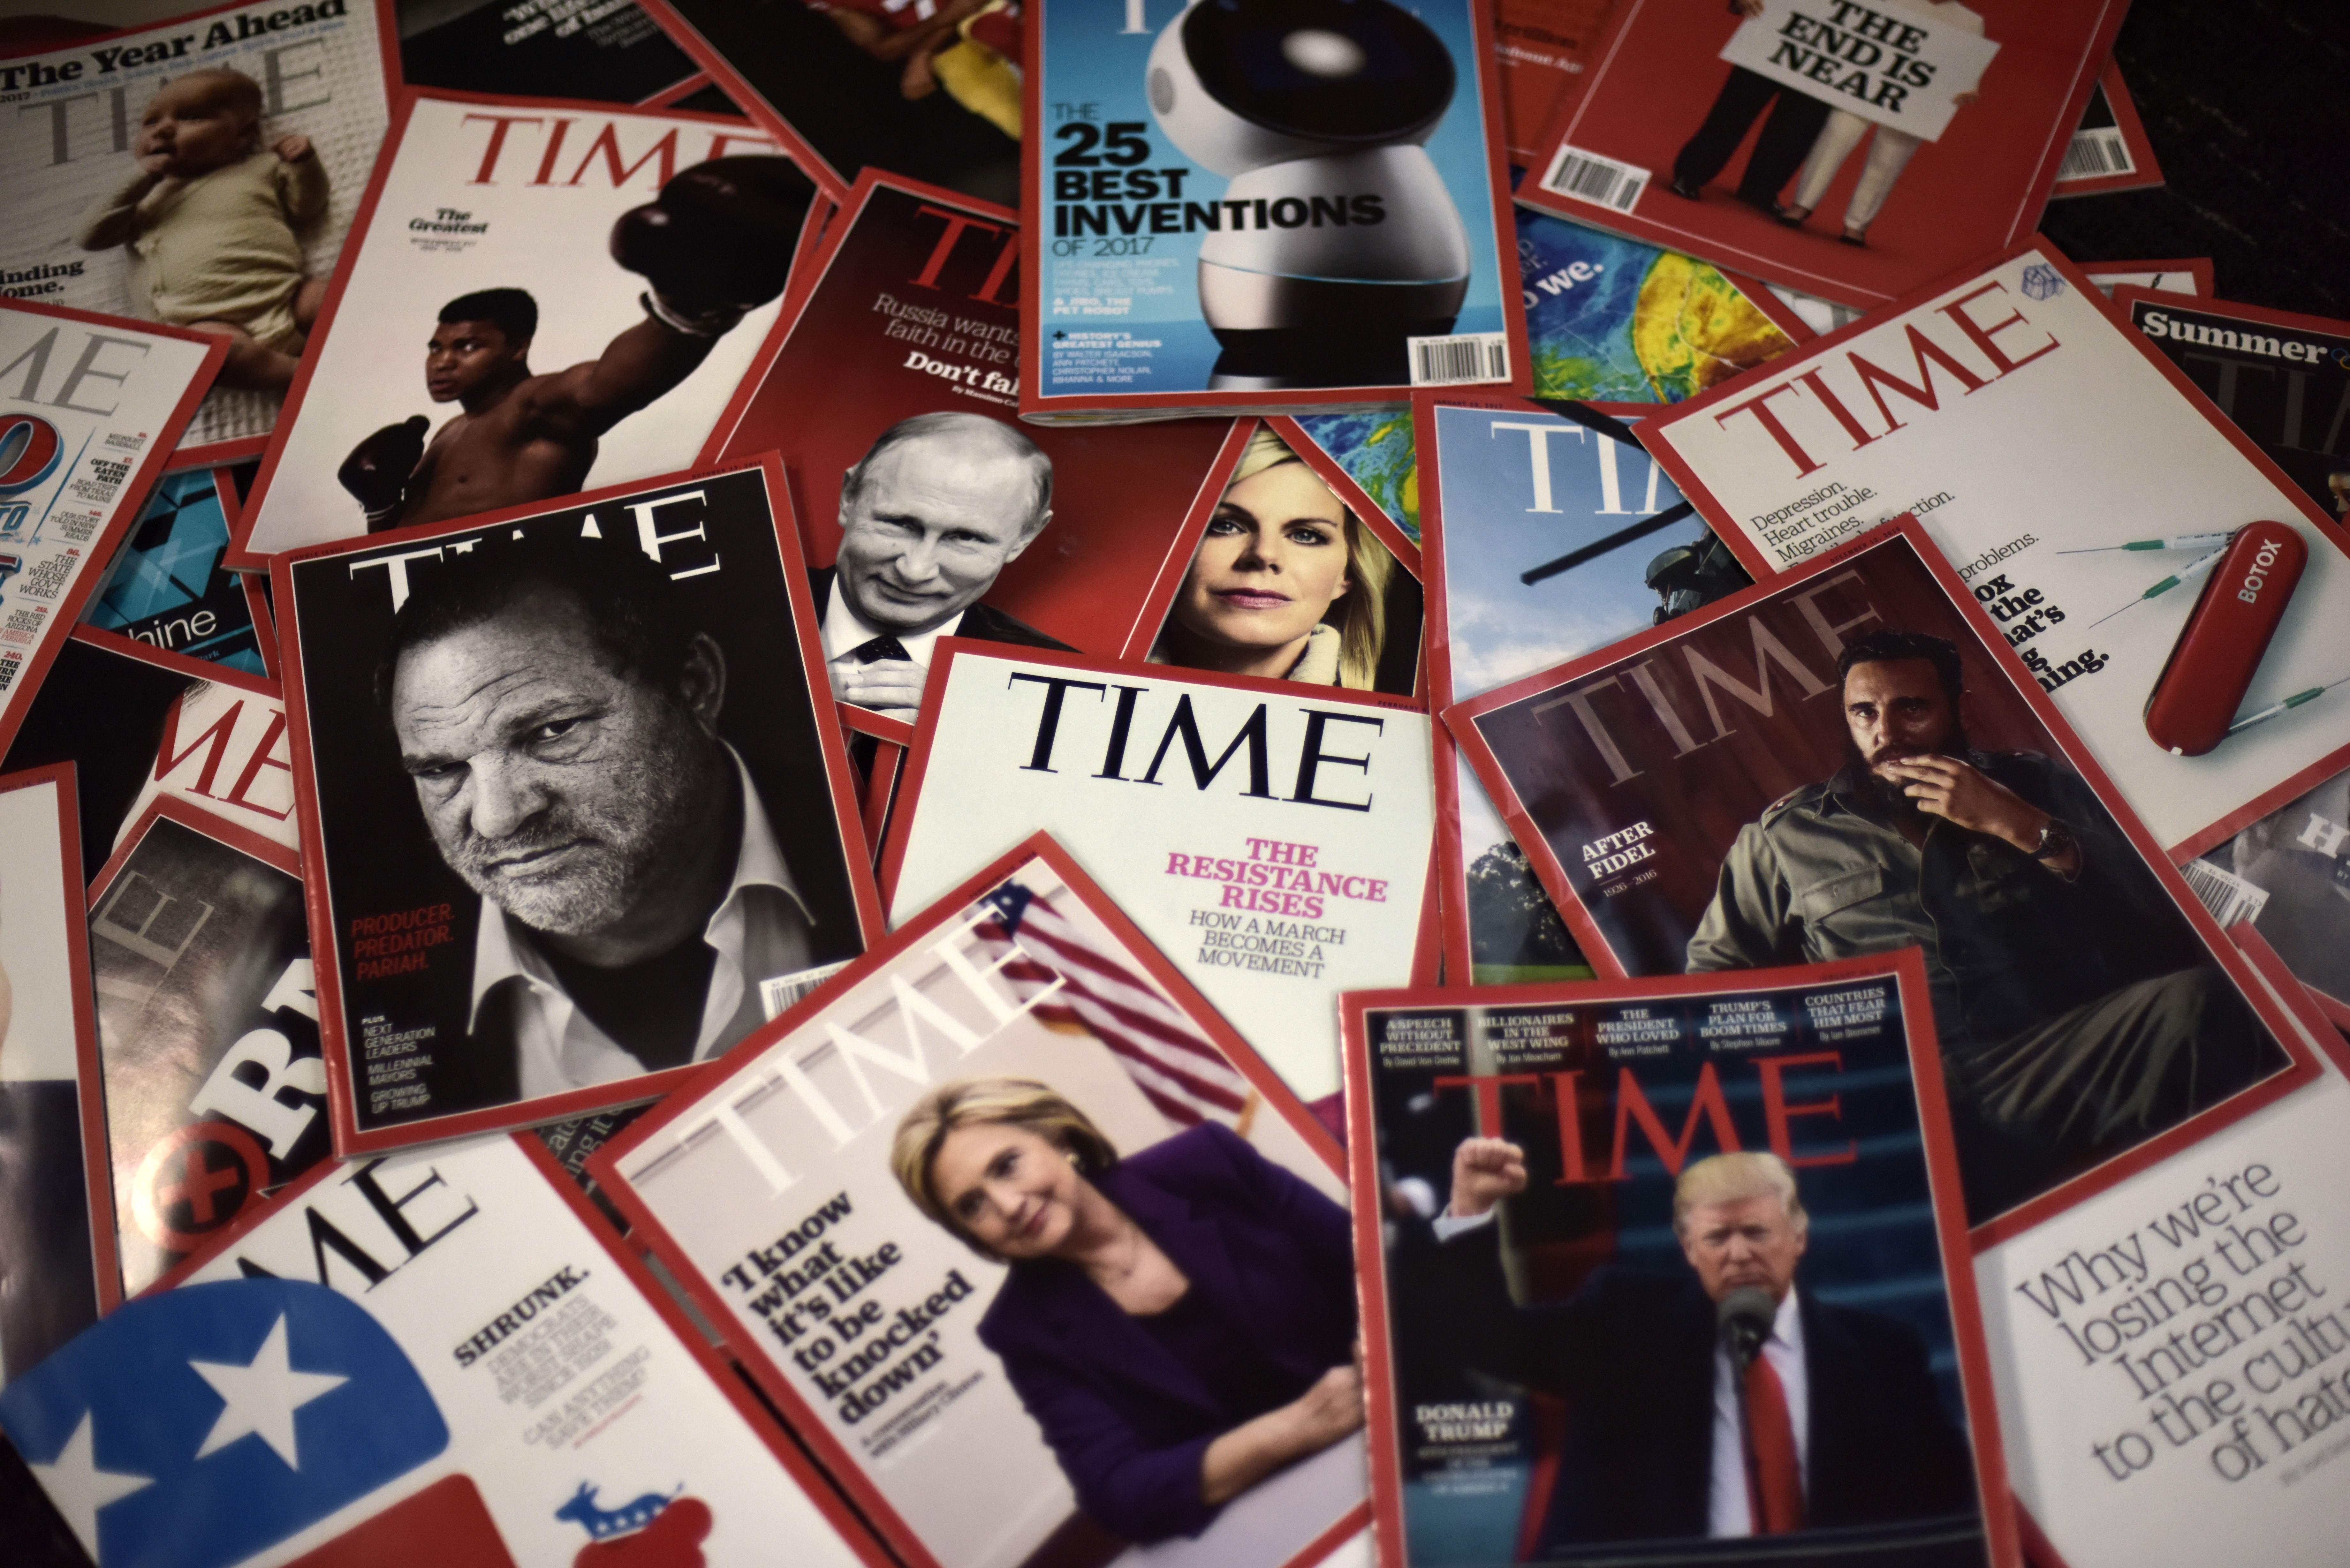 Time magazine copies are displayed on a table in Washington on November 27, 2017.